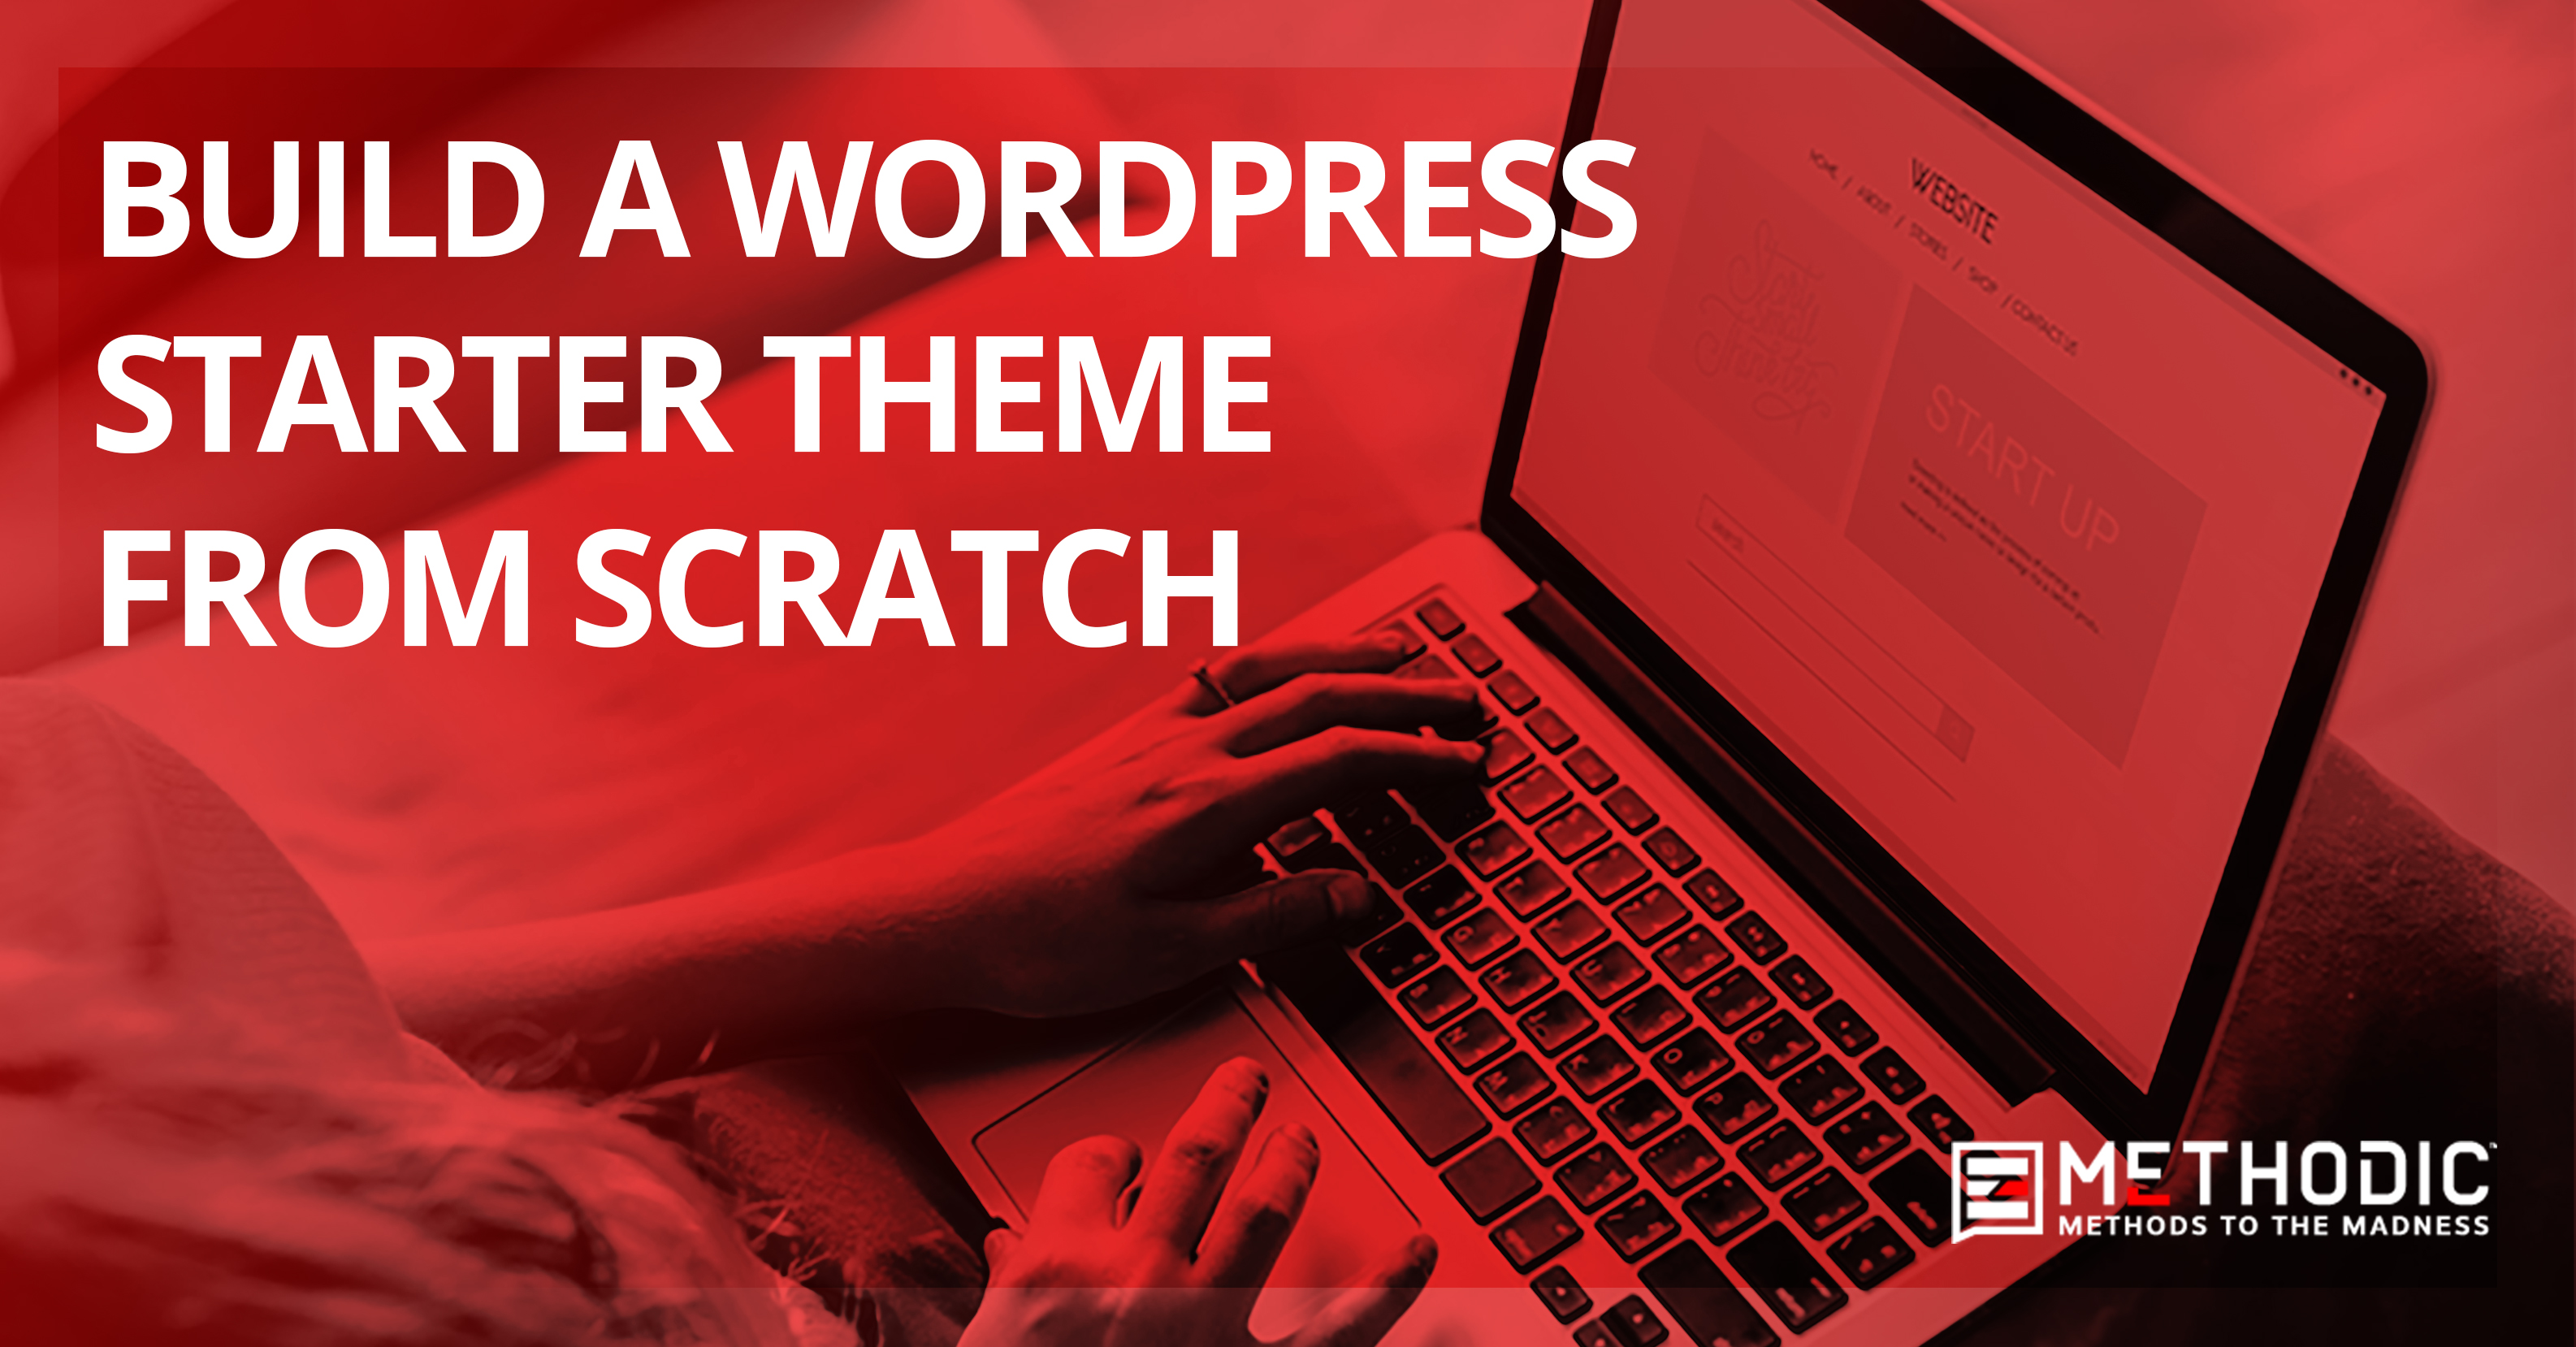 Build a WordPress Starter Theme from Scratch